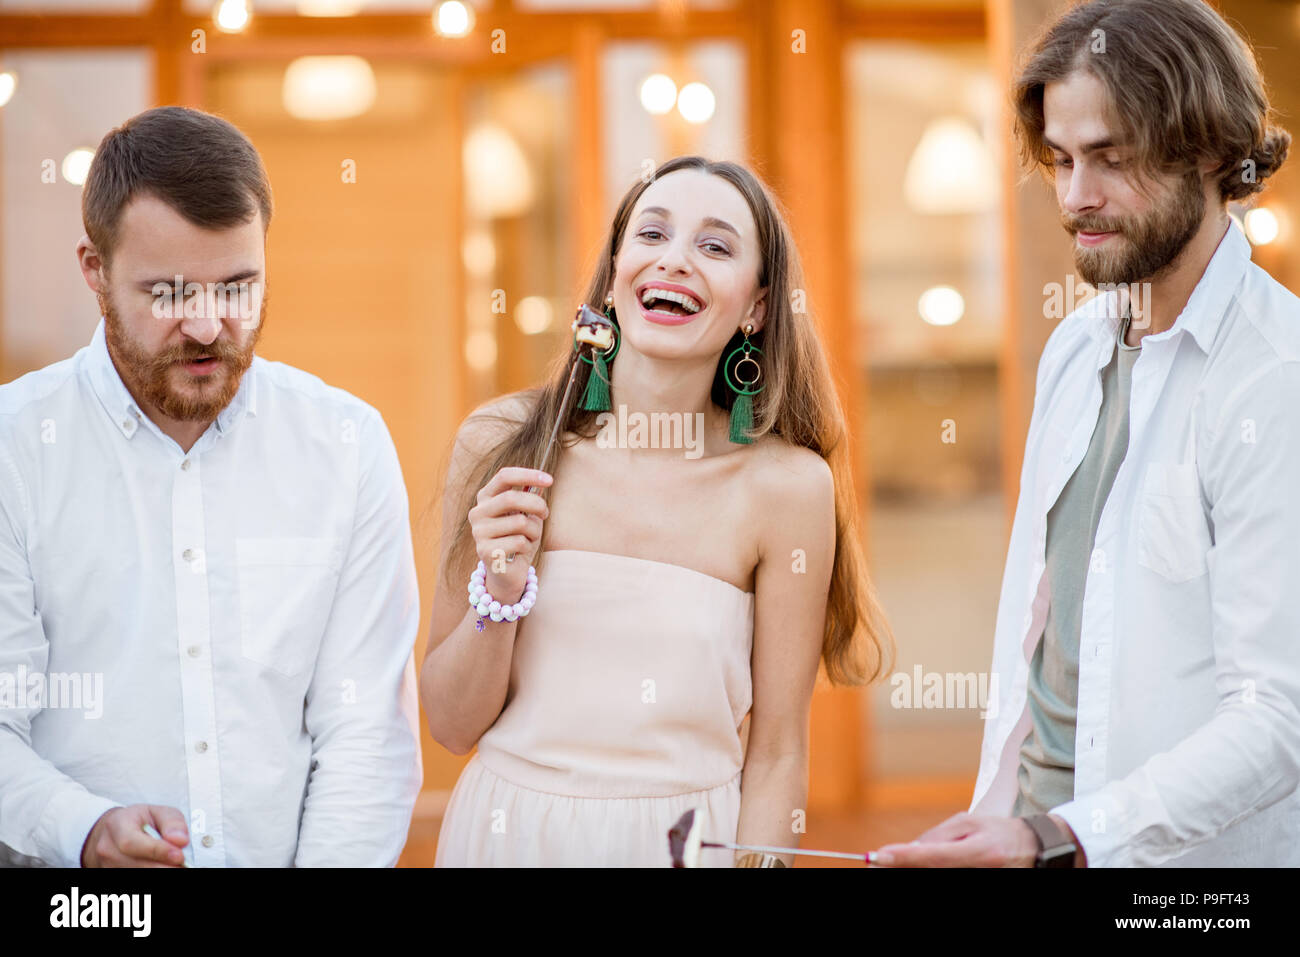 Friends having fun on the backyard of the house outdoors - Stock Image